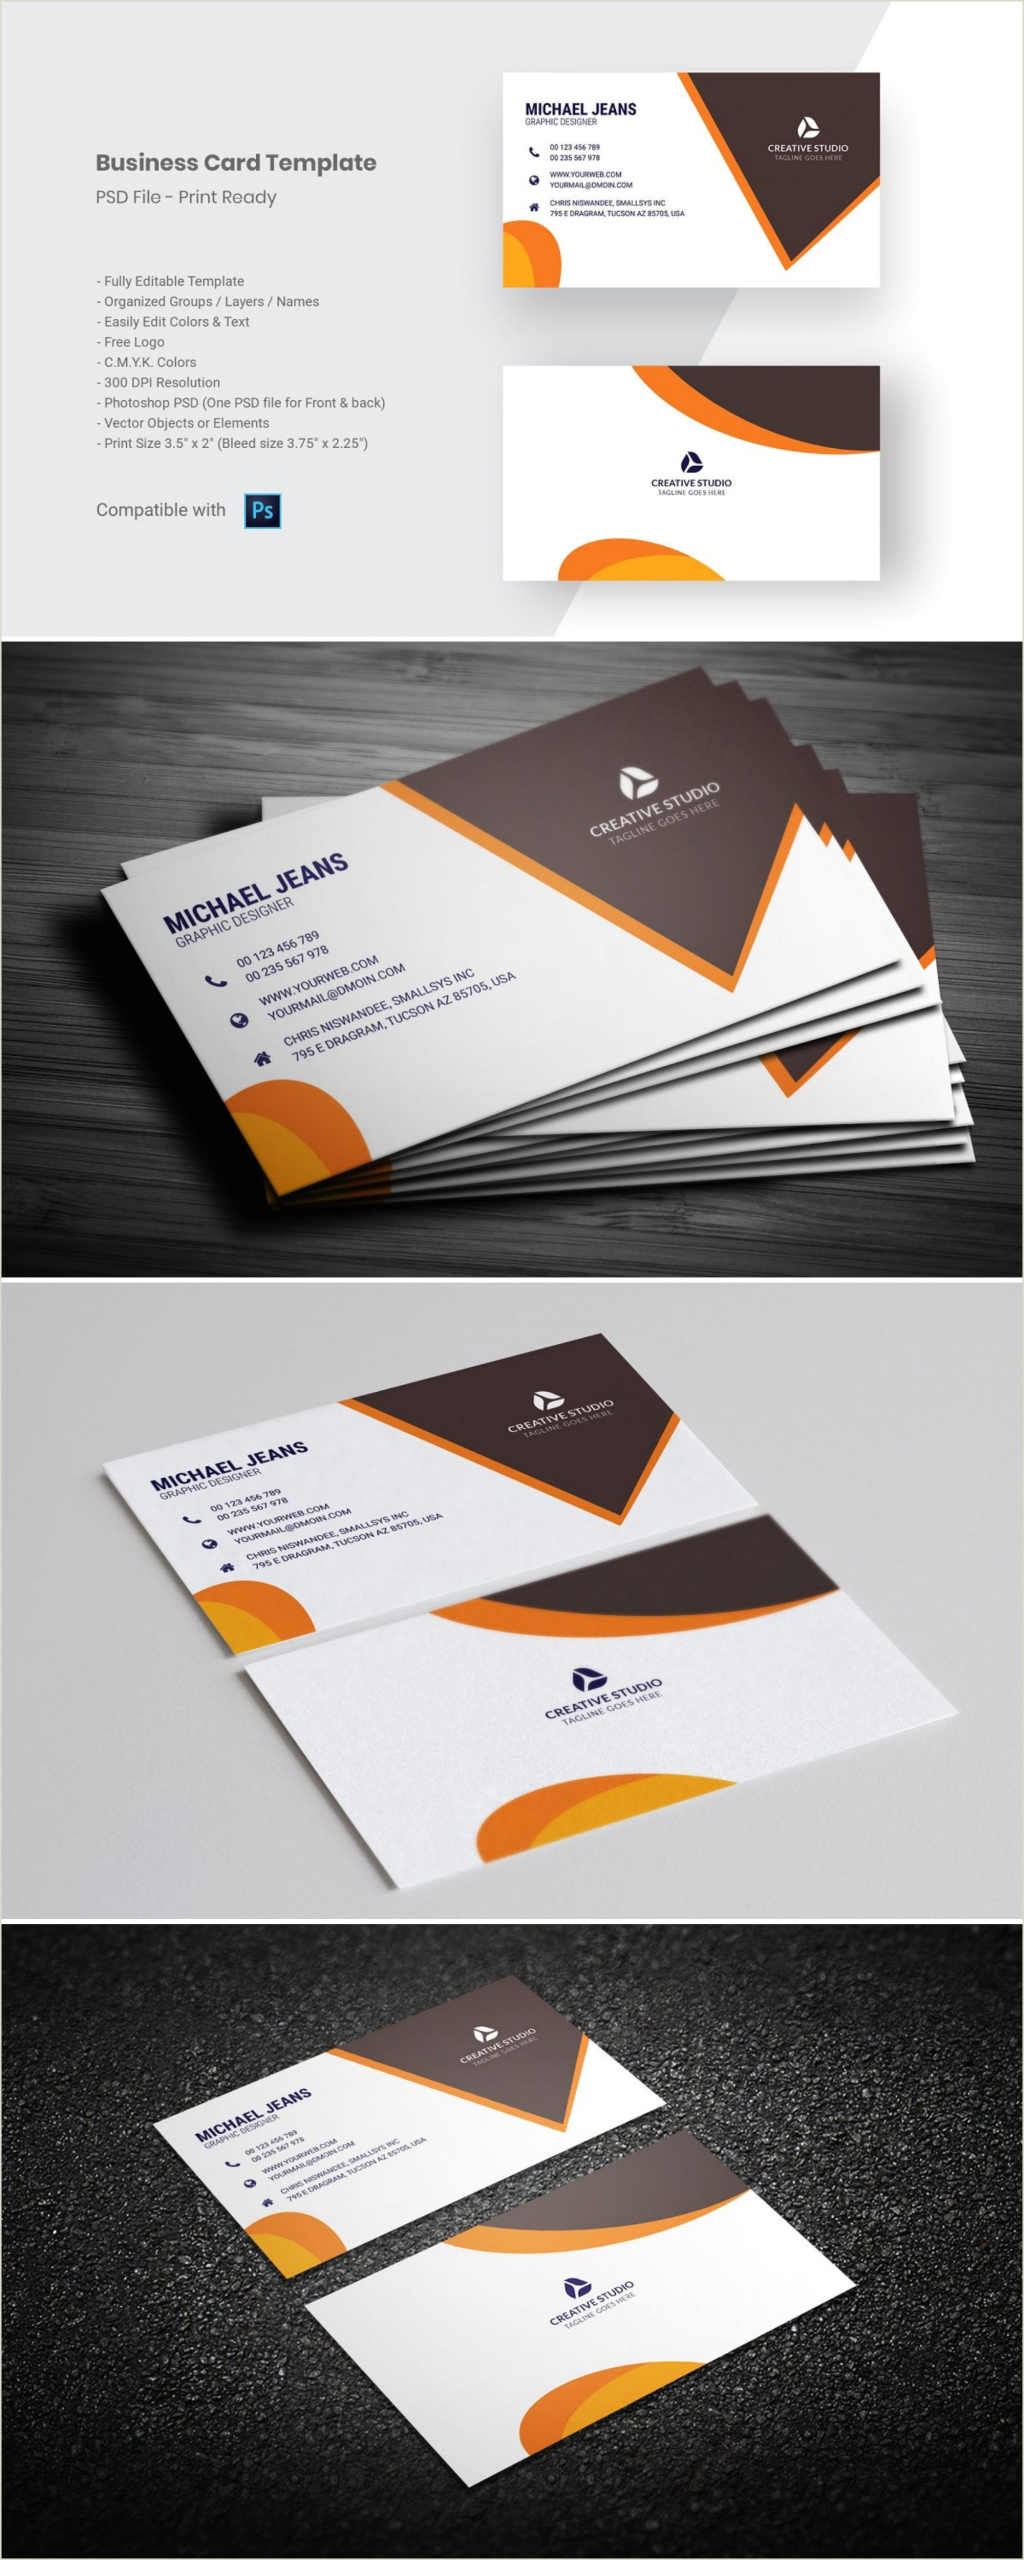 What To Put On The Back Of A Business Card Modern Business Card Template